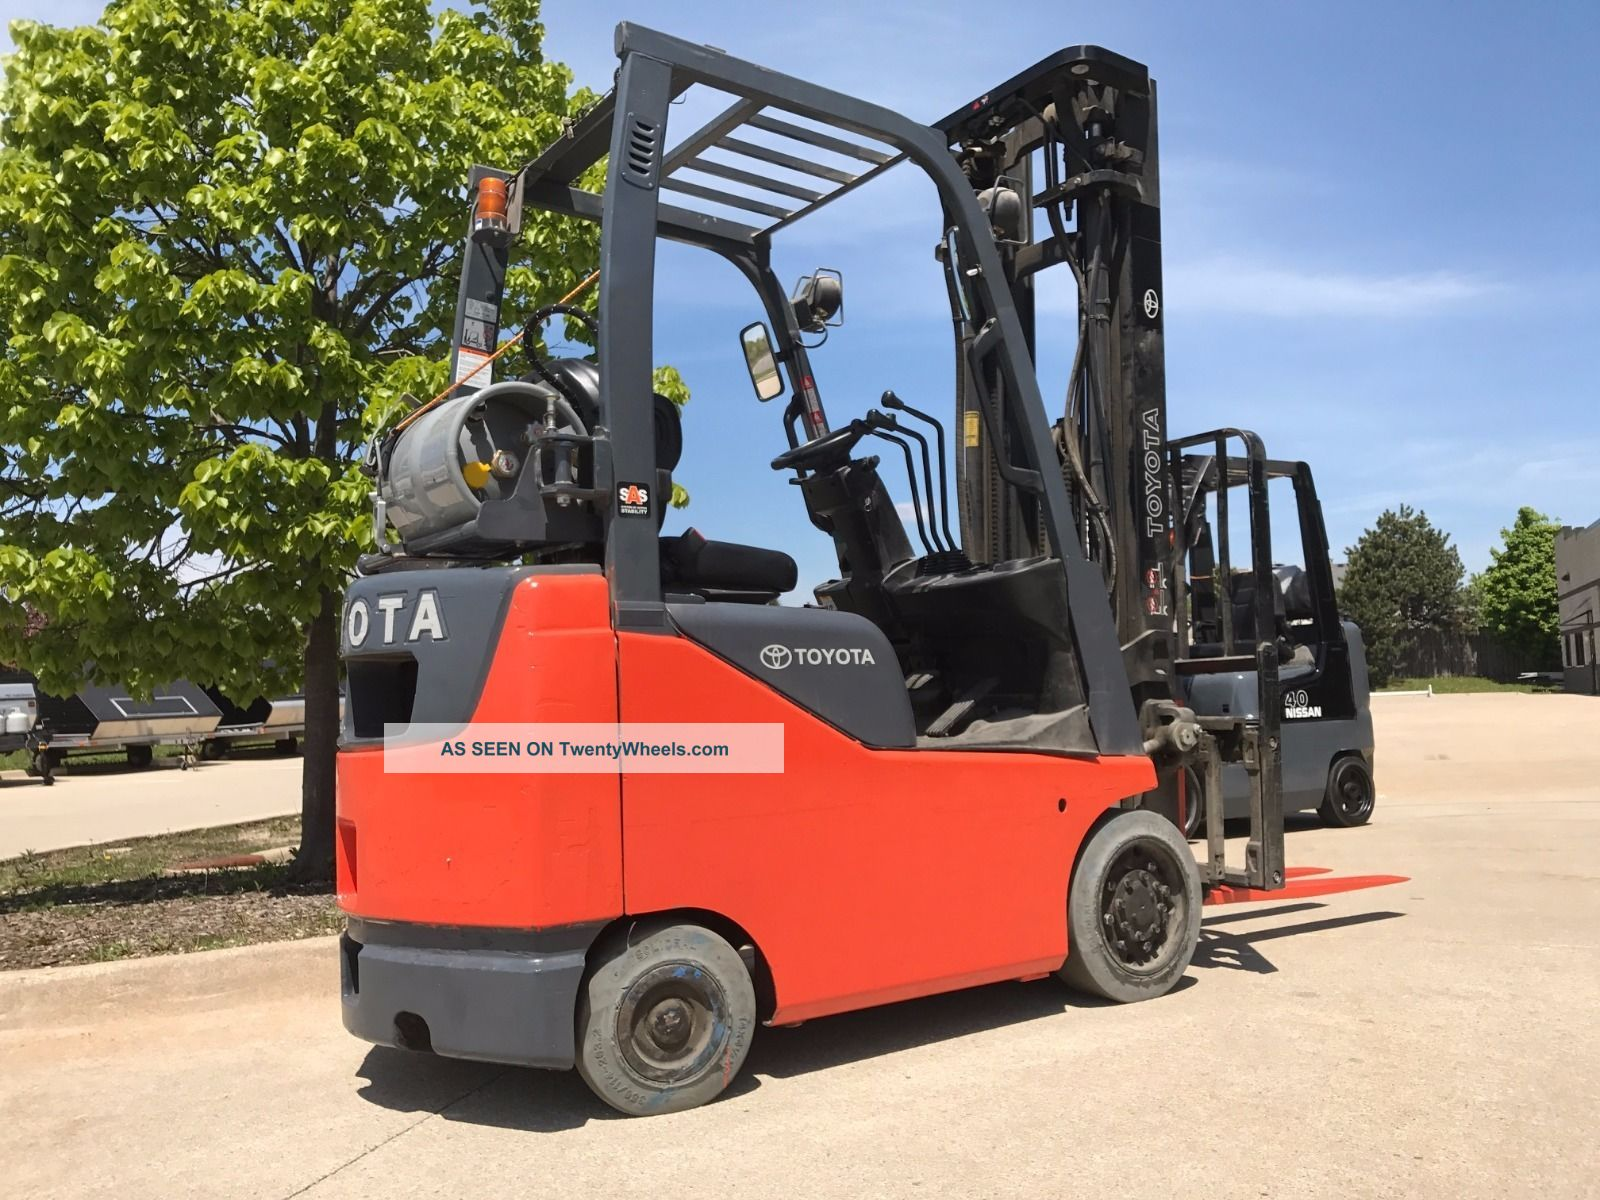 2014 Toyota Lpg/propane Forklift - - We Will Ship Lifts 18 Feet - Save $$ Forklifts photo